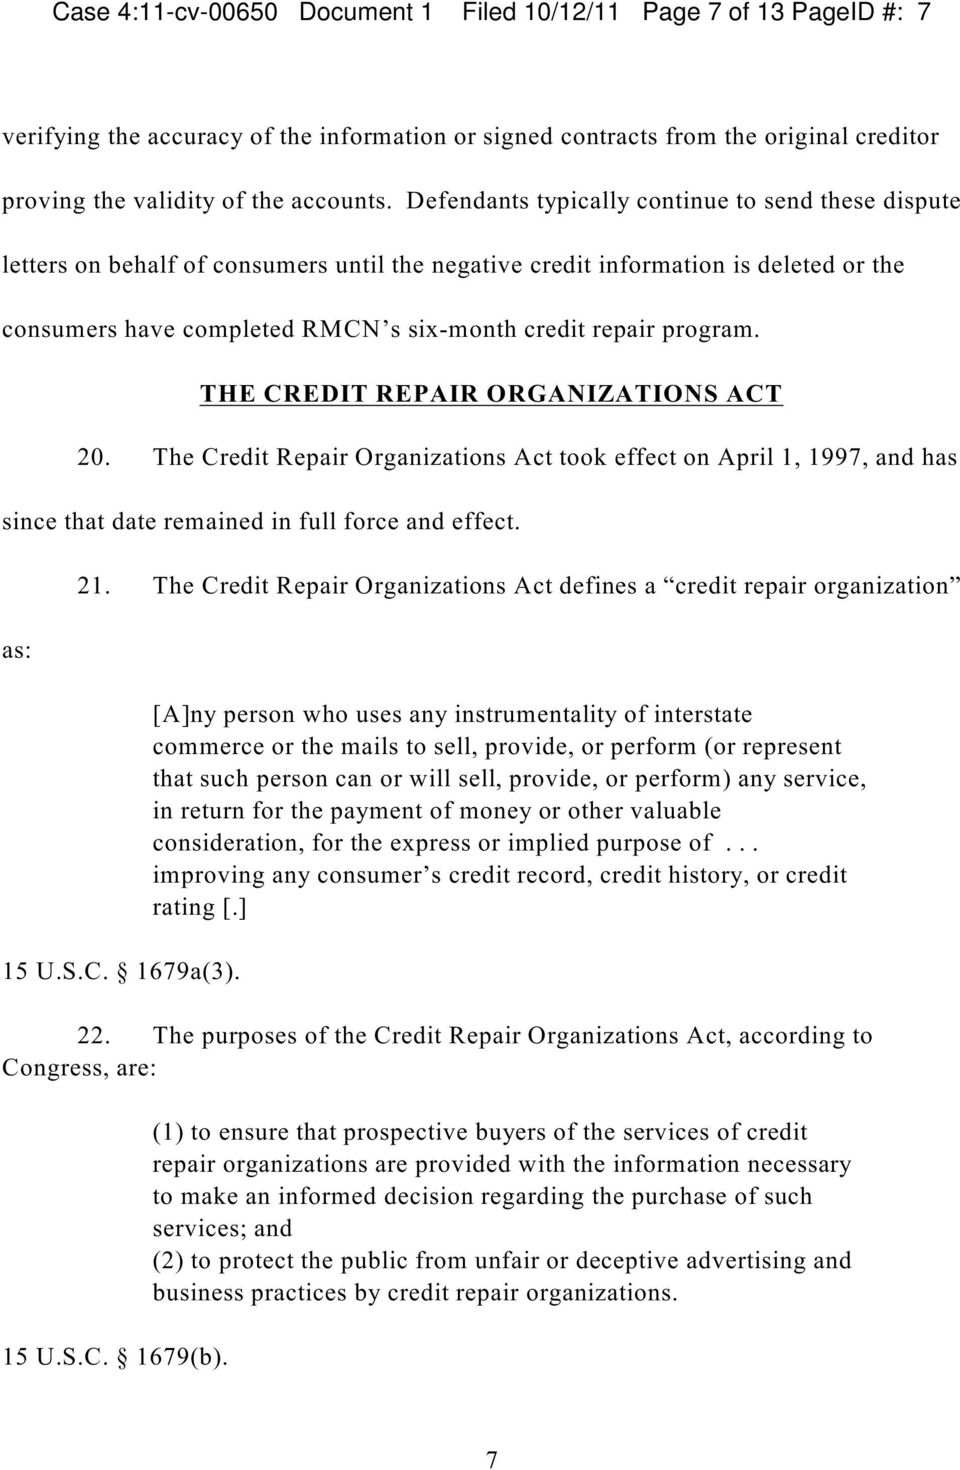 program. THE CREDIT REPAIR ORGANIZATIONS ACT 20. The Credit Repair Organizations Act took effect on April 1, 1997, and has since that date remained in full force and effect. as: 21.